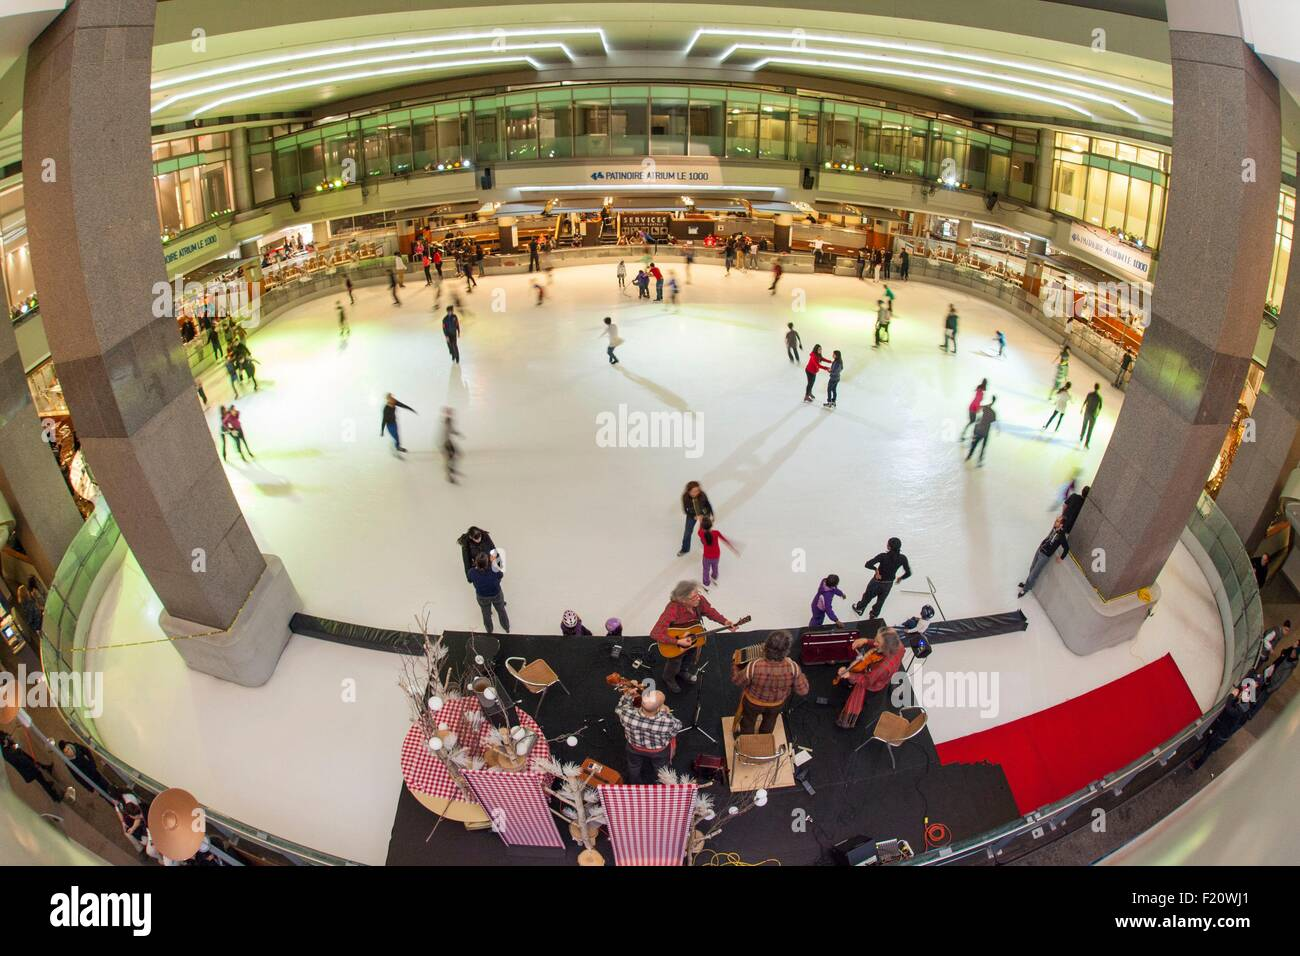 Indoor Skating Rink Immagini  Indoor Skating Rink Fotos Stock  Alamy